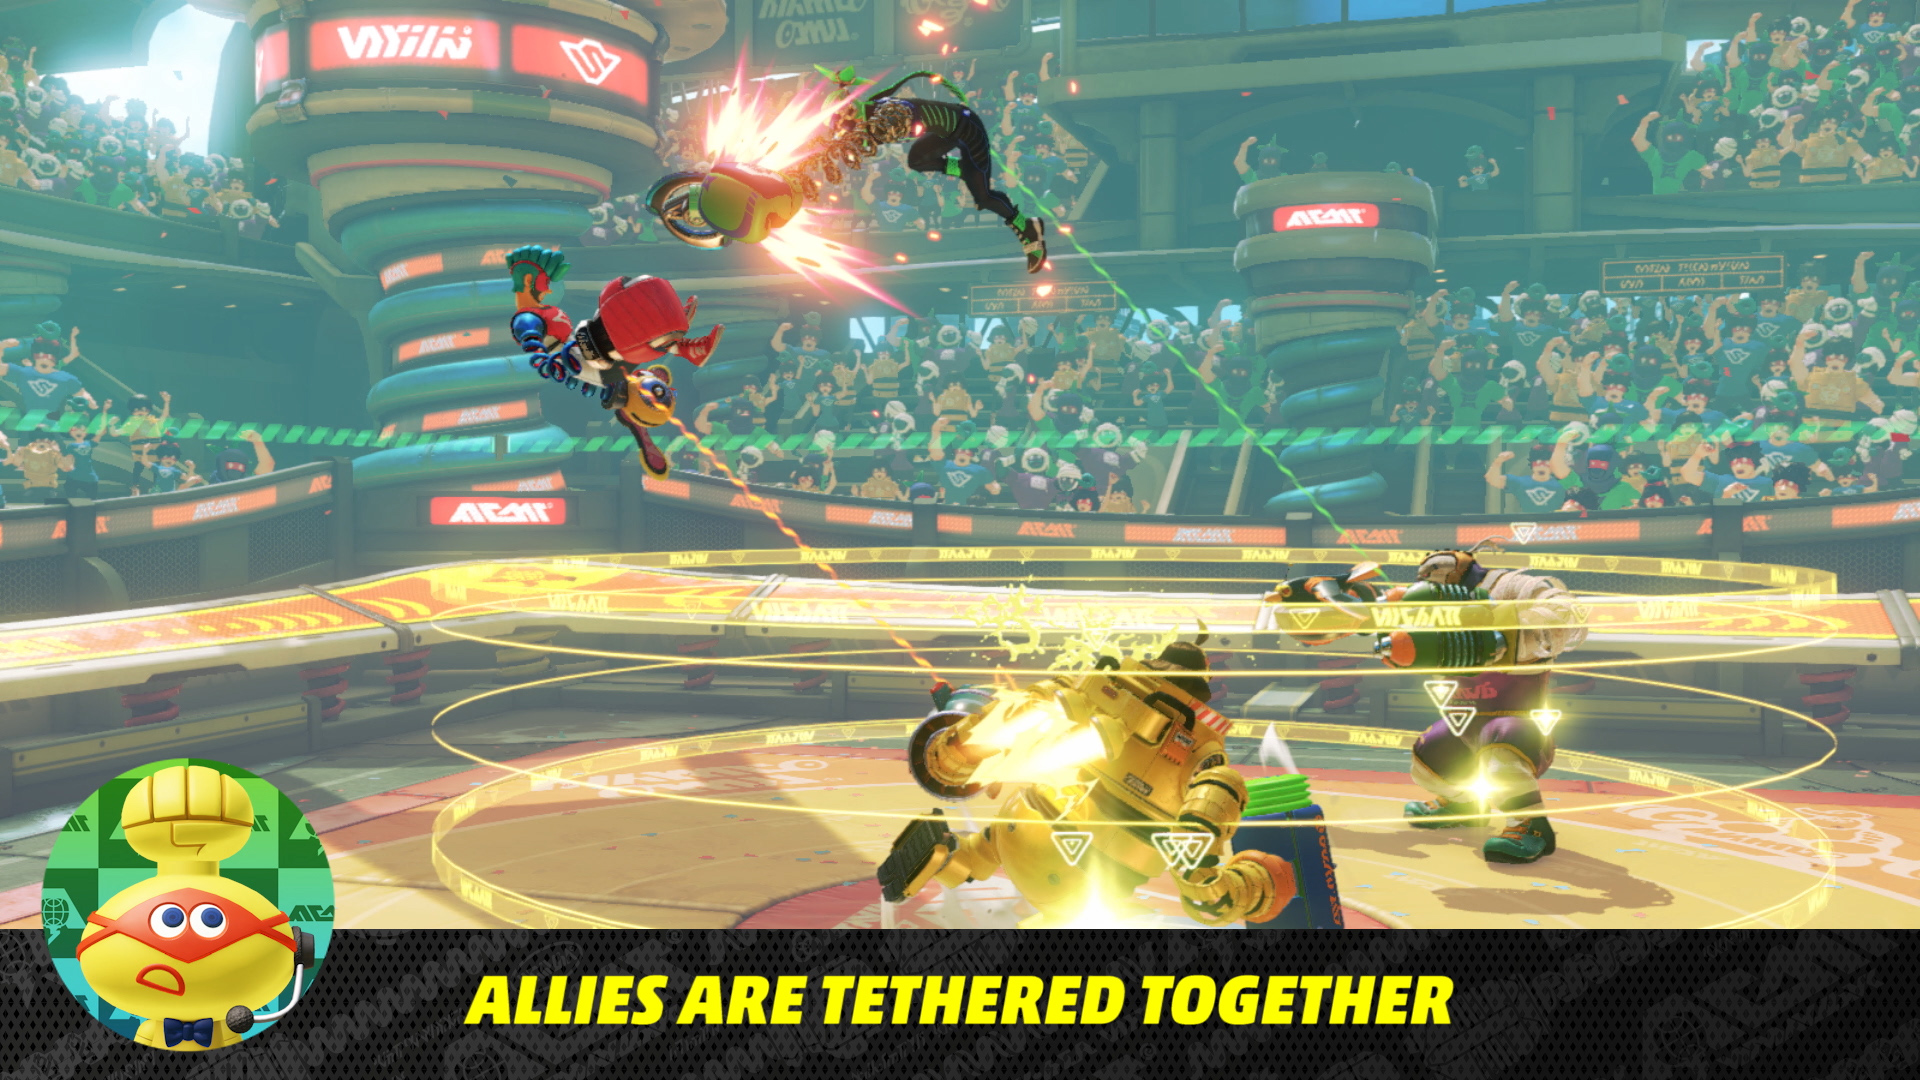 Nintendo Direct 5/17/17 - Arms allies tethered together